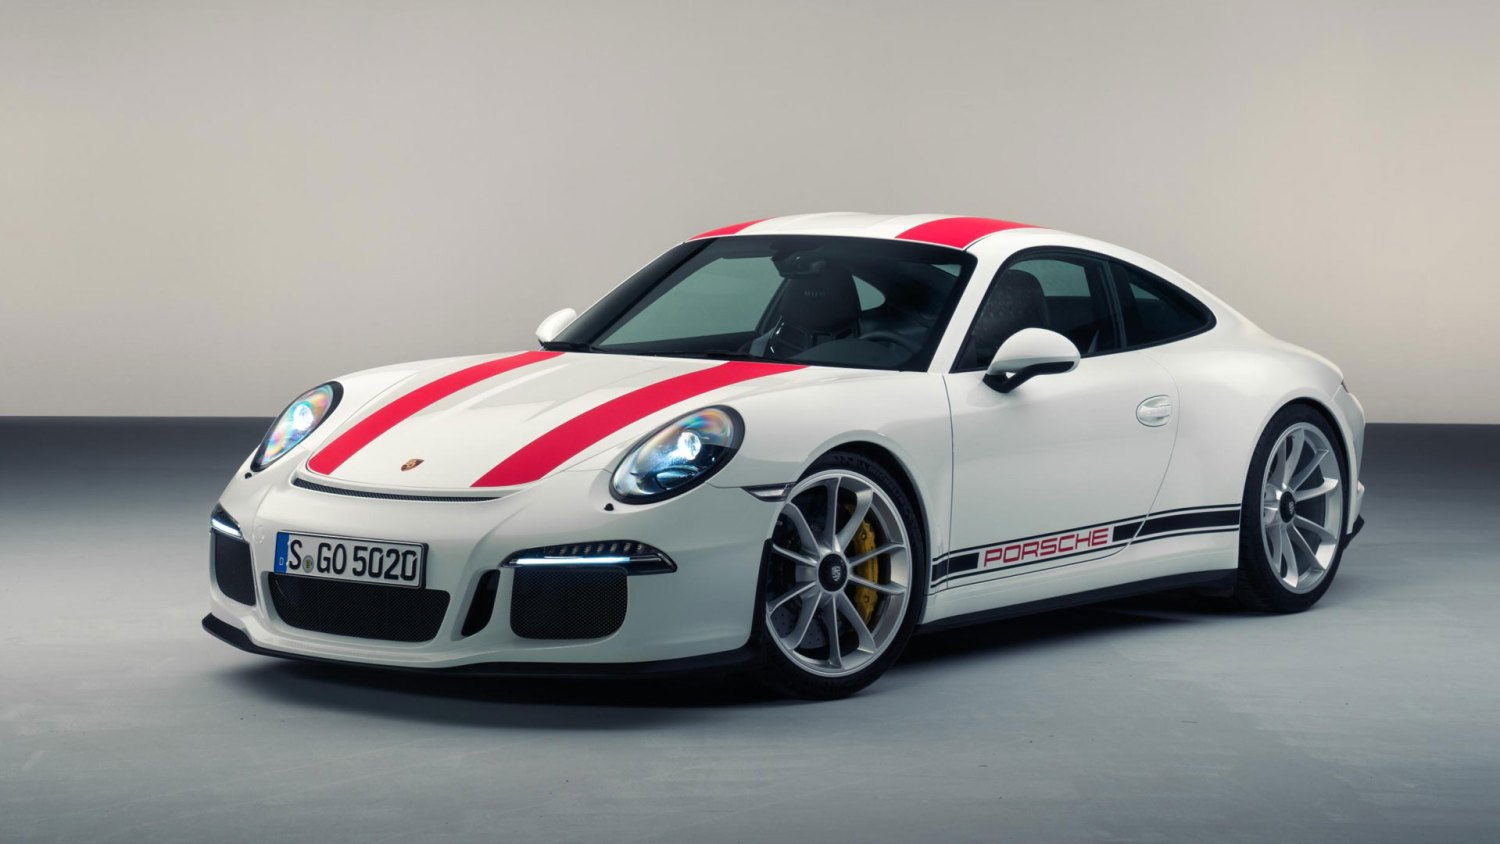 Porsche 911 R - greatest cars of the decade